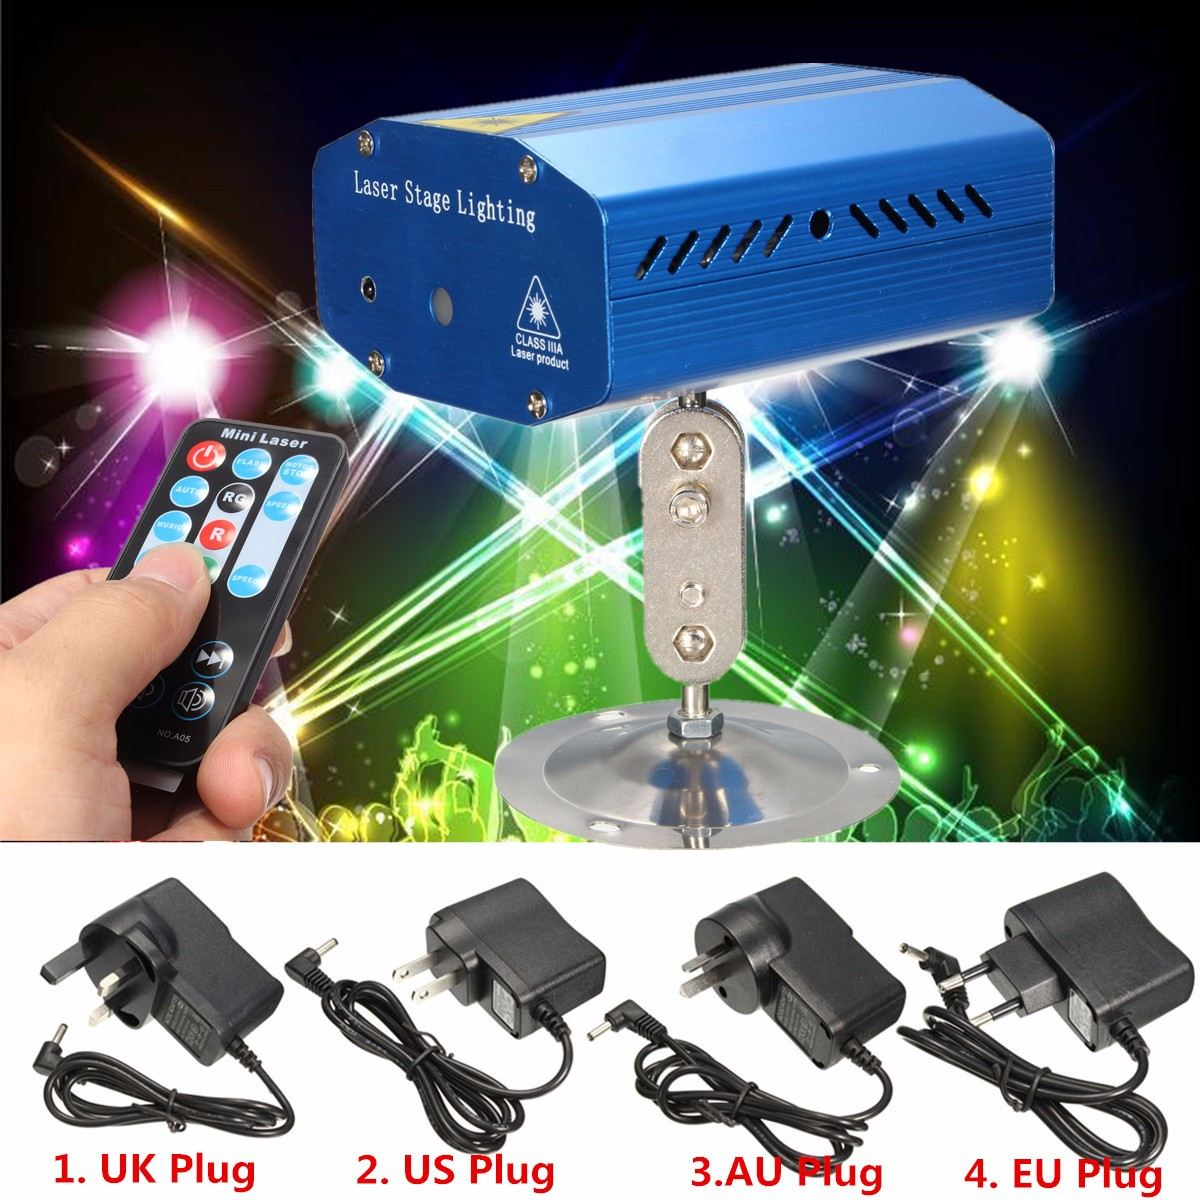 Voice Remote Control Laser Projector Stage Light LED Night Lamp With Holder DJ Club Pub Bar Disco Wedding Party Show Lighting venta 150mw luces lasers 650nm dpss luz lazer automatico control remoto sonido show laser pub bar boda diodo laser envio gratis